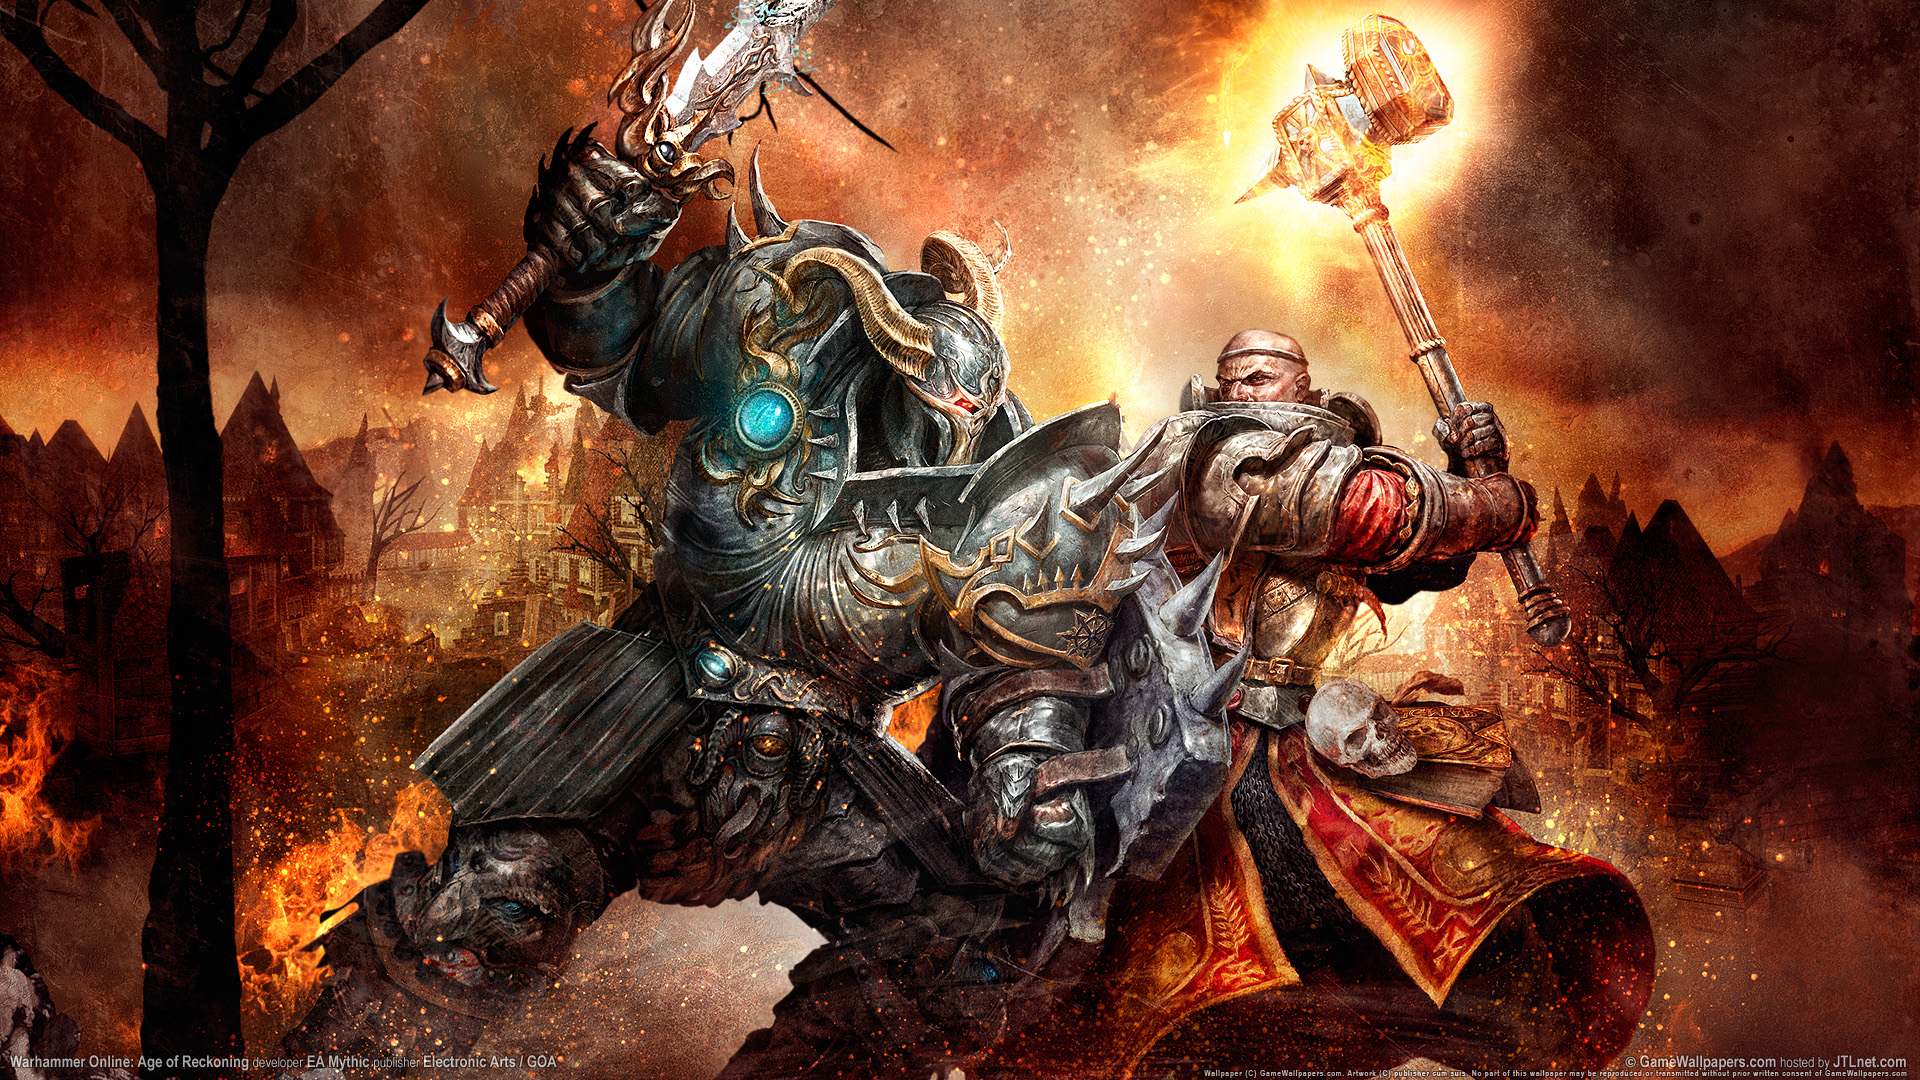 HD Wallpapers Warhammer Age of reckoning